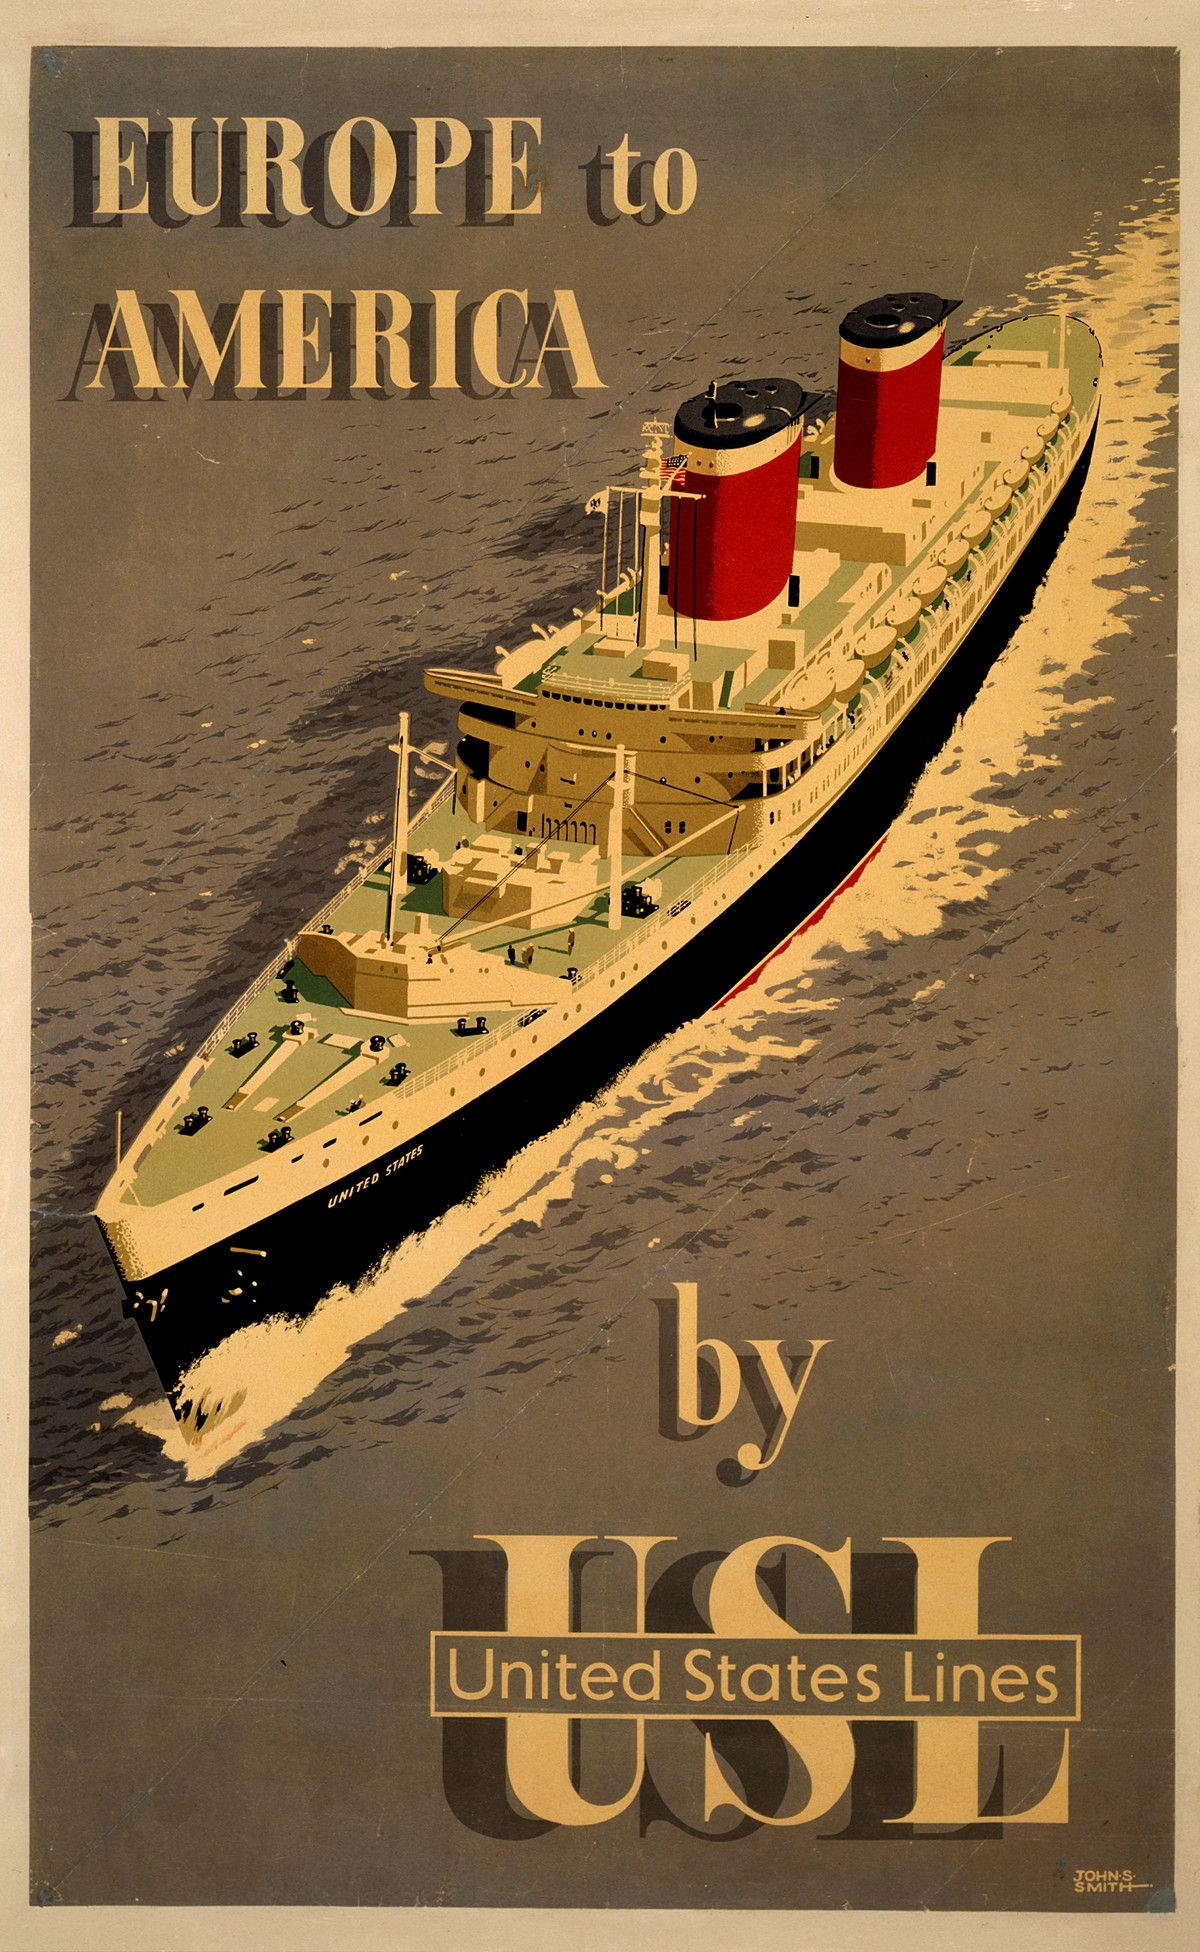 Europe To America By Usl Vintage Travel Poster Vintage Travel Posters Travel Posters Cruise Travel